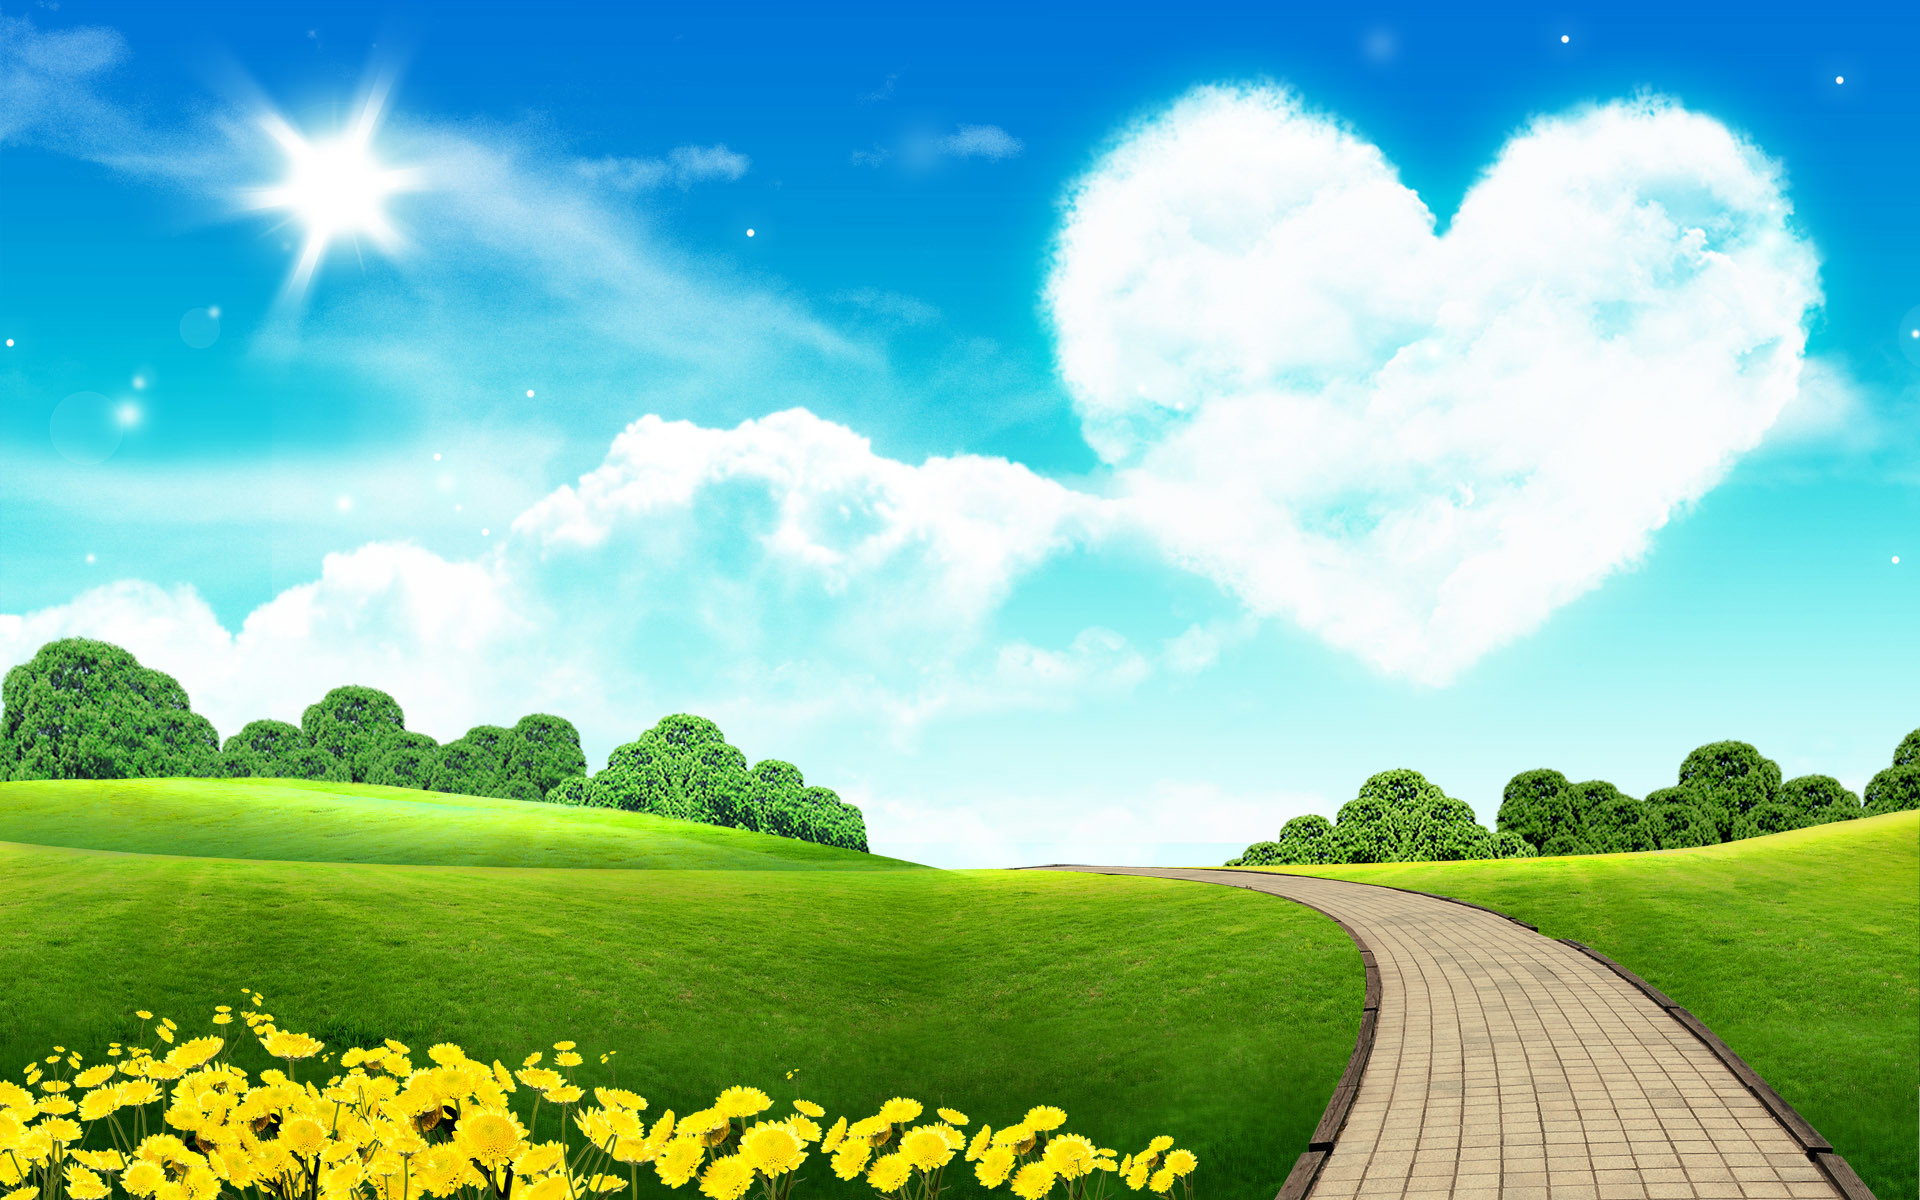 Hd Quality Nature And Landscape Wallpapers Free Download - Lovely Sky - HD Wallpaper